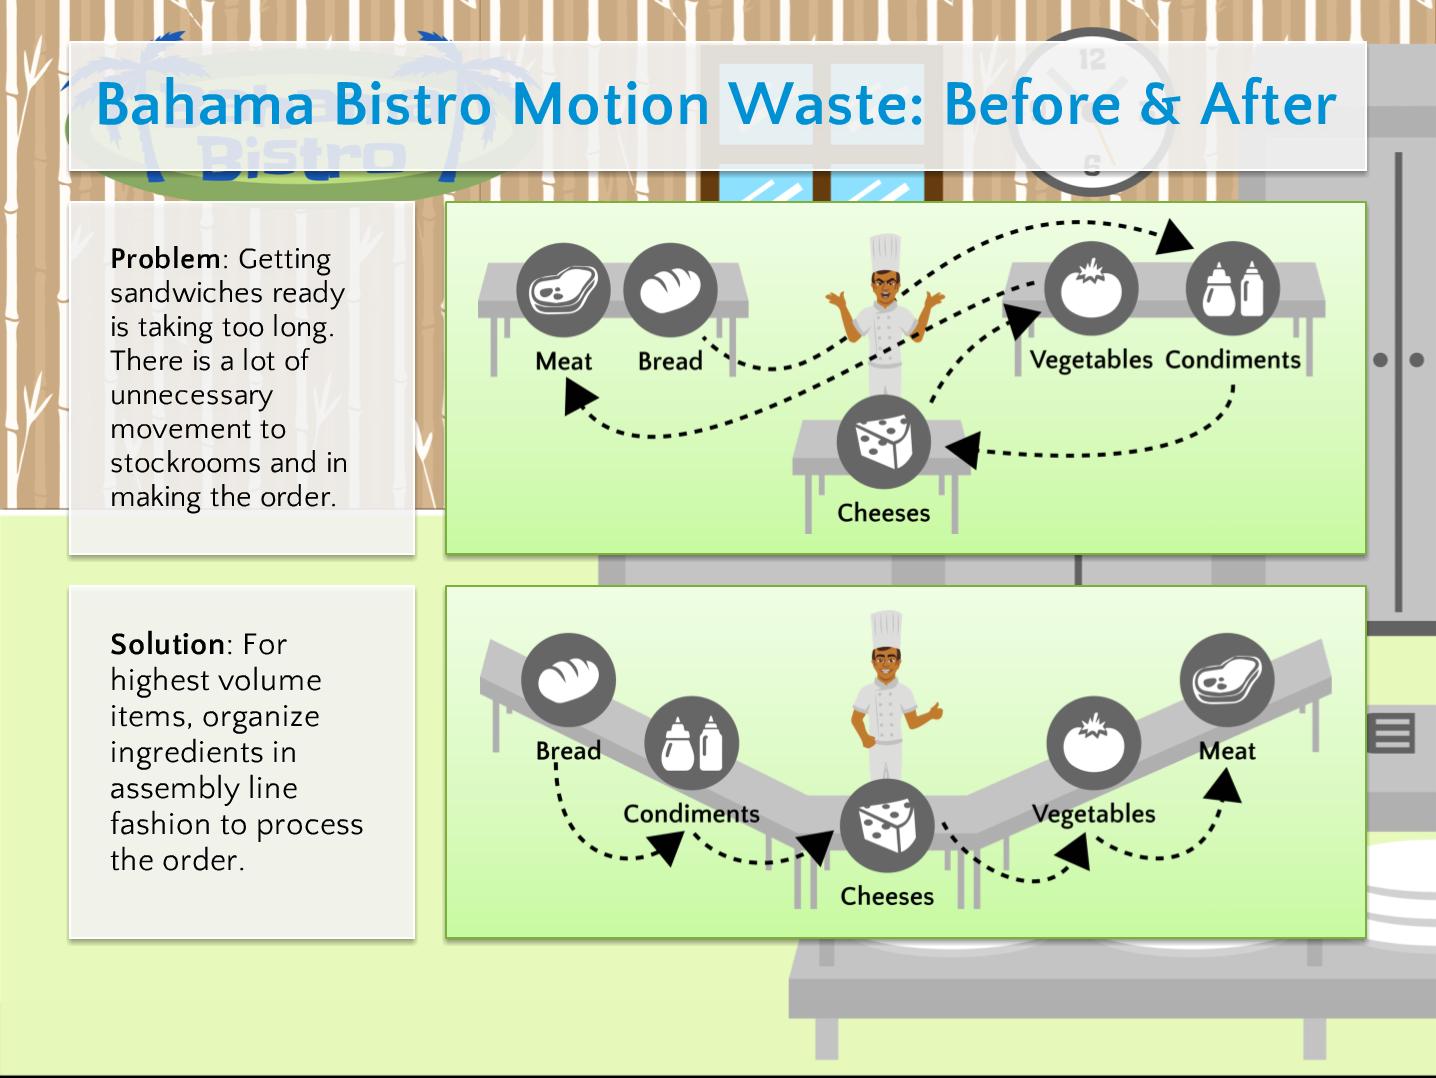 Bahama bistro motion waste before after goleansixsigma bahama bistro motion waste before after goleansixsigma lean training xflitez Choice Image